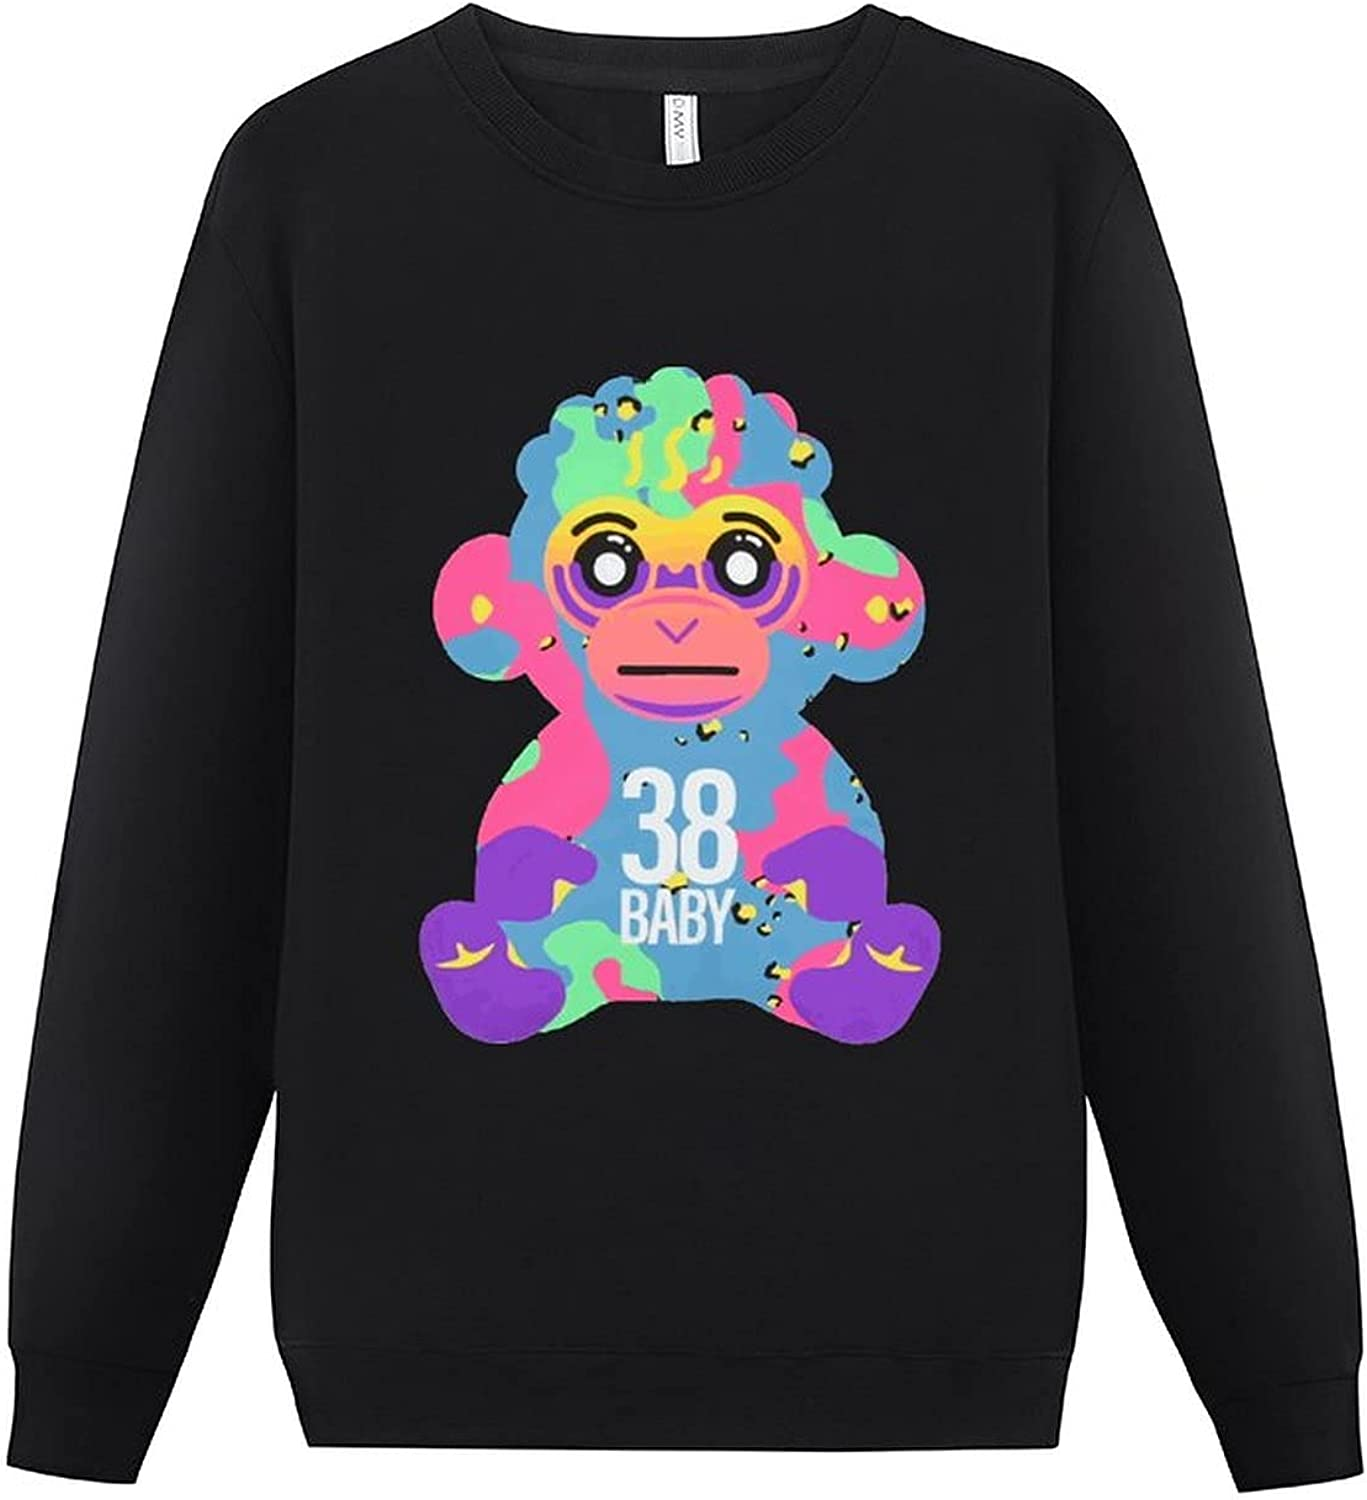 N-B-A Gifts Young-boy 38 Baby Monkey Men's Sleeve Limited price sale Pull Long Round Neck